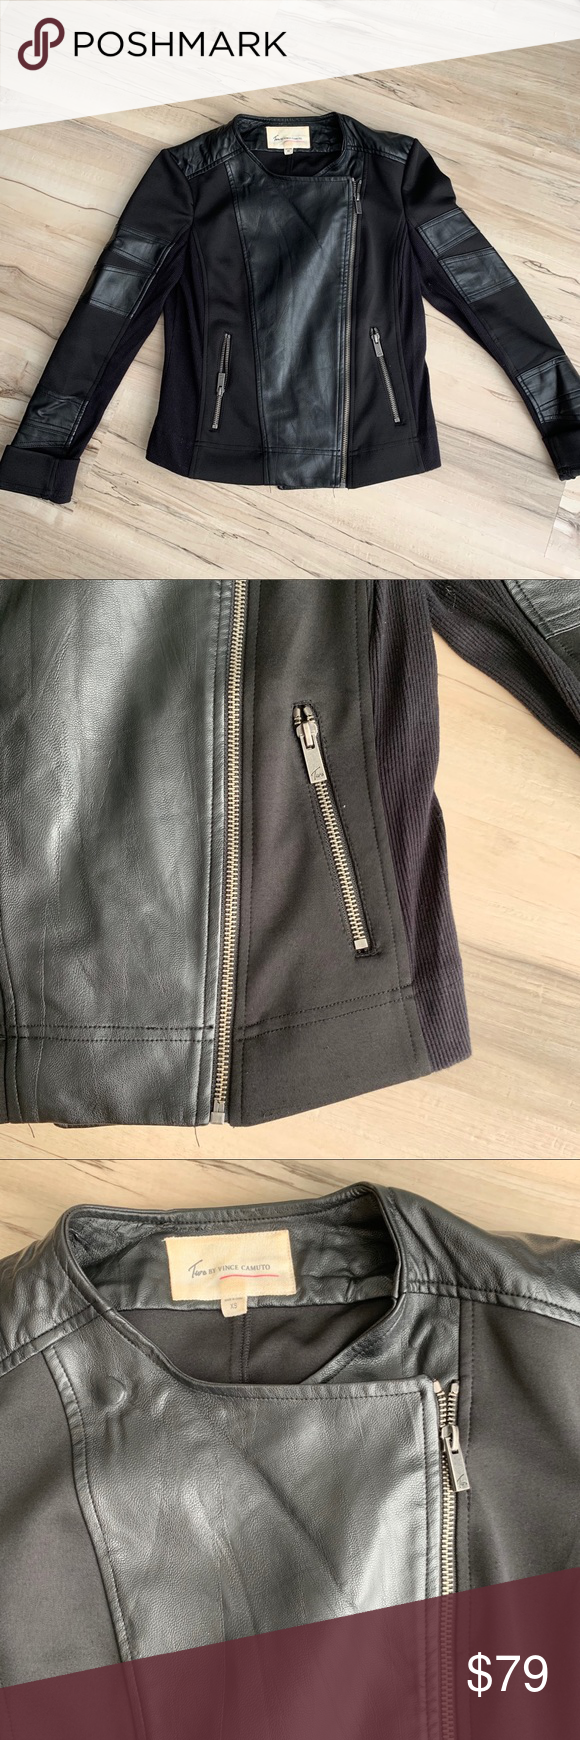 Two By Vince Camuto Black Faux Leather Jacket Black Faux Leather Jacket Faux Leather Jackets Leather Jacket [ 1740 x 580 Pixel ]